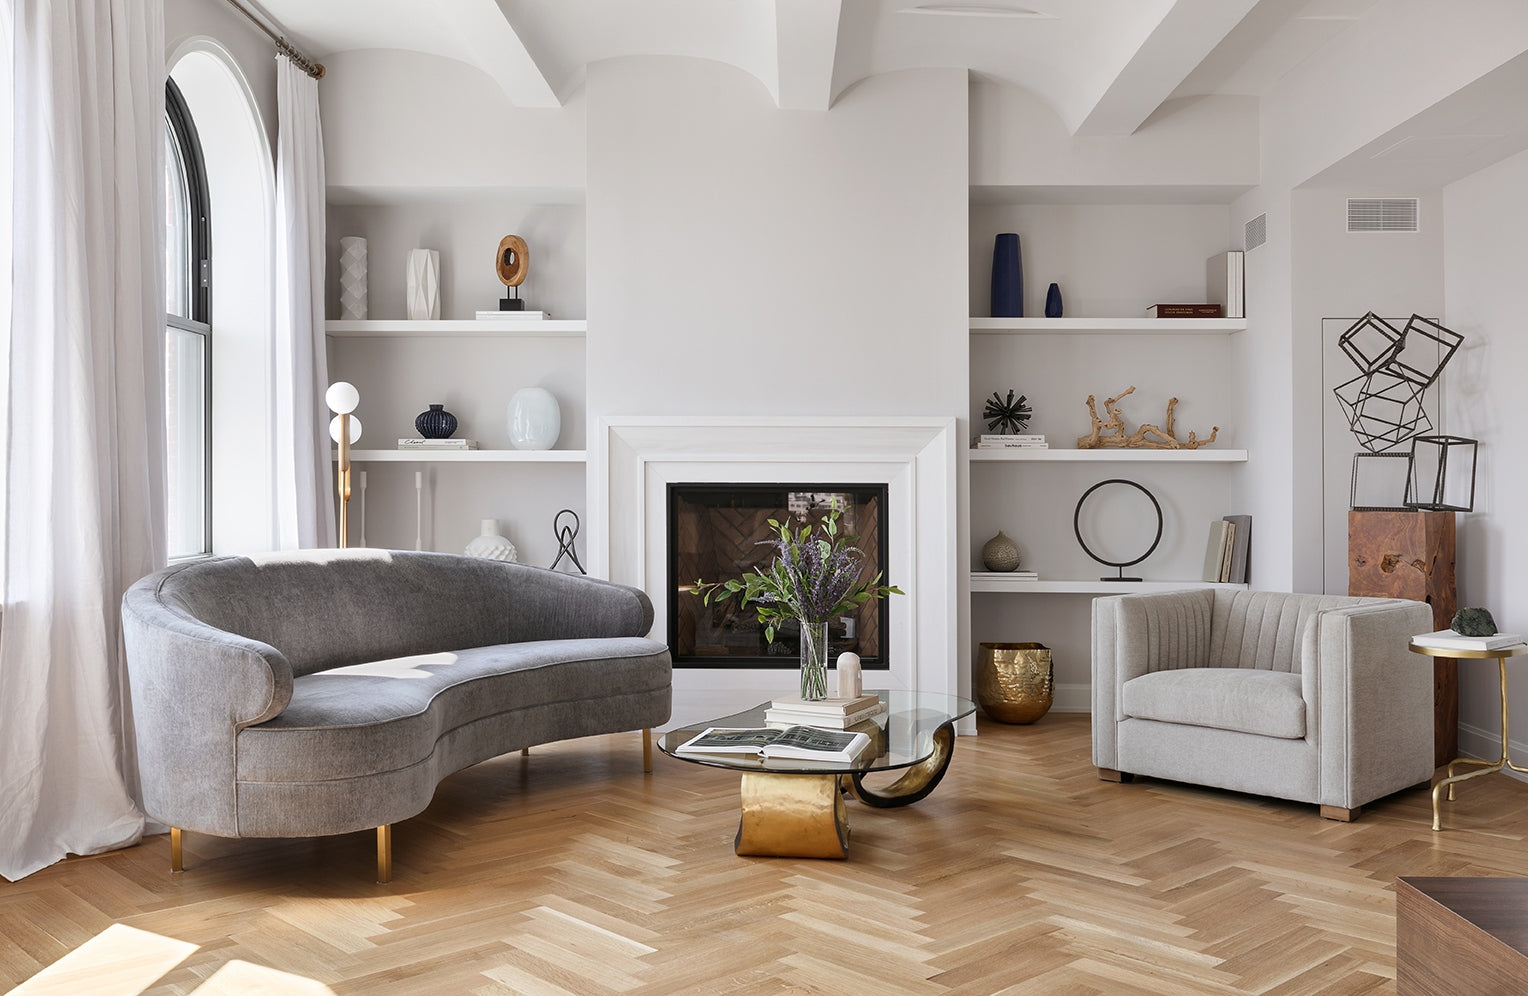 What is a Herringbone Pattern in Interior Design? - Difference Between Chevron & Herringbone Patterns - Interior Marketing Group - LuxDeco.com Style Guide